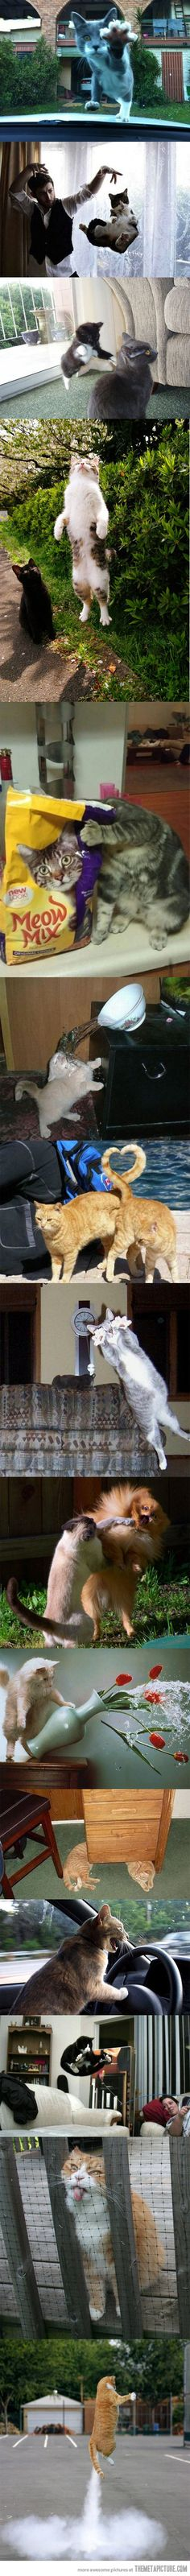 15 perfectly timed cat photos…